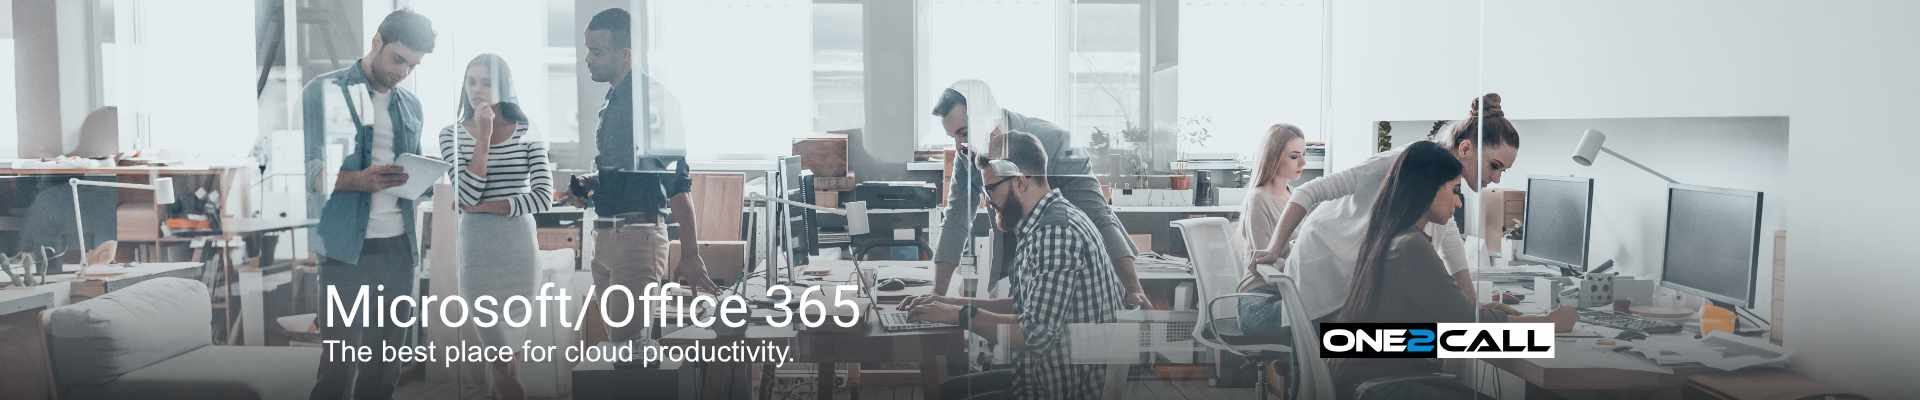 Microsoft / Office 365 - The best place for cloud productivity.